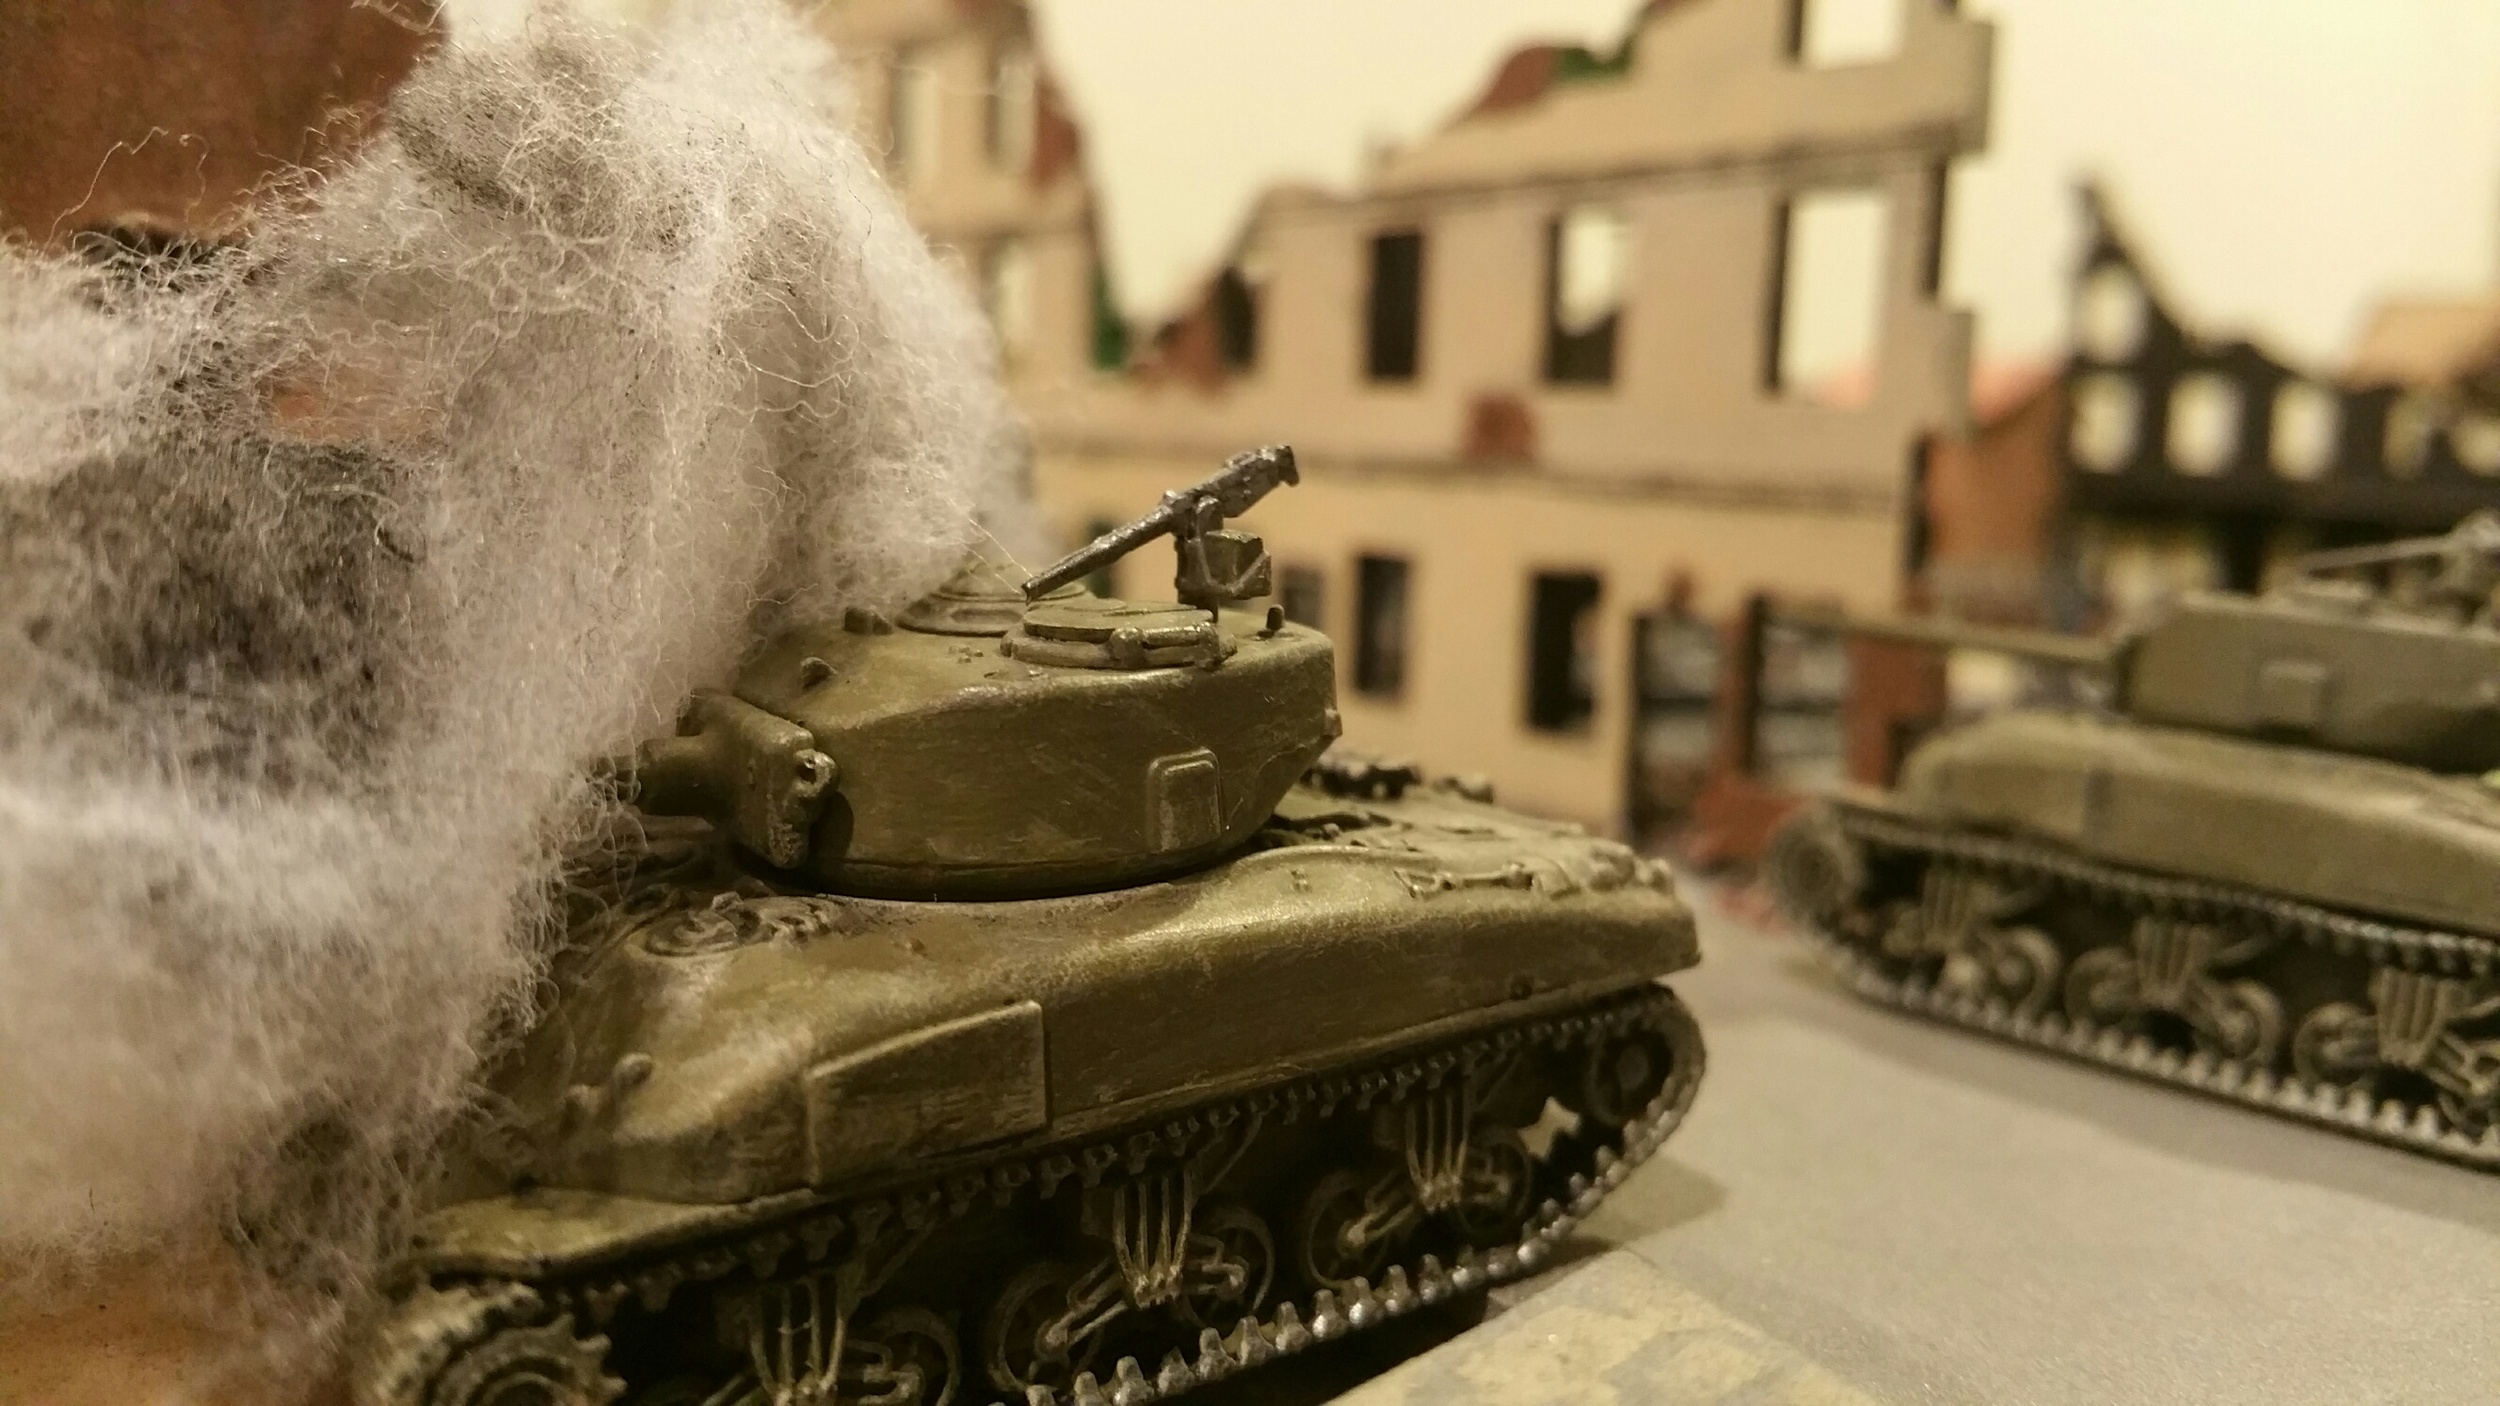 Big gun Sherman burns in the center of town after dueling with the Pz IVs.